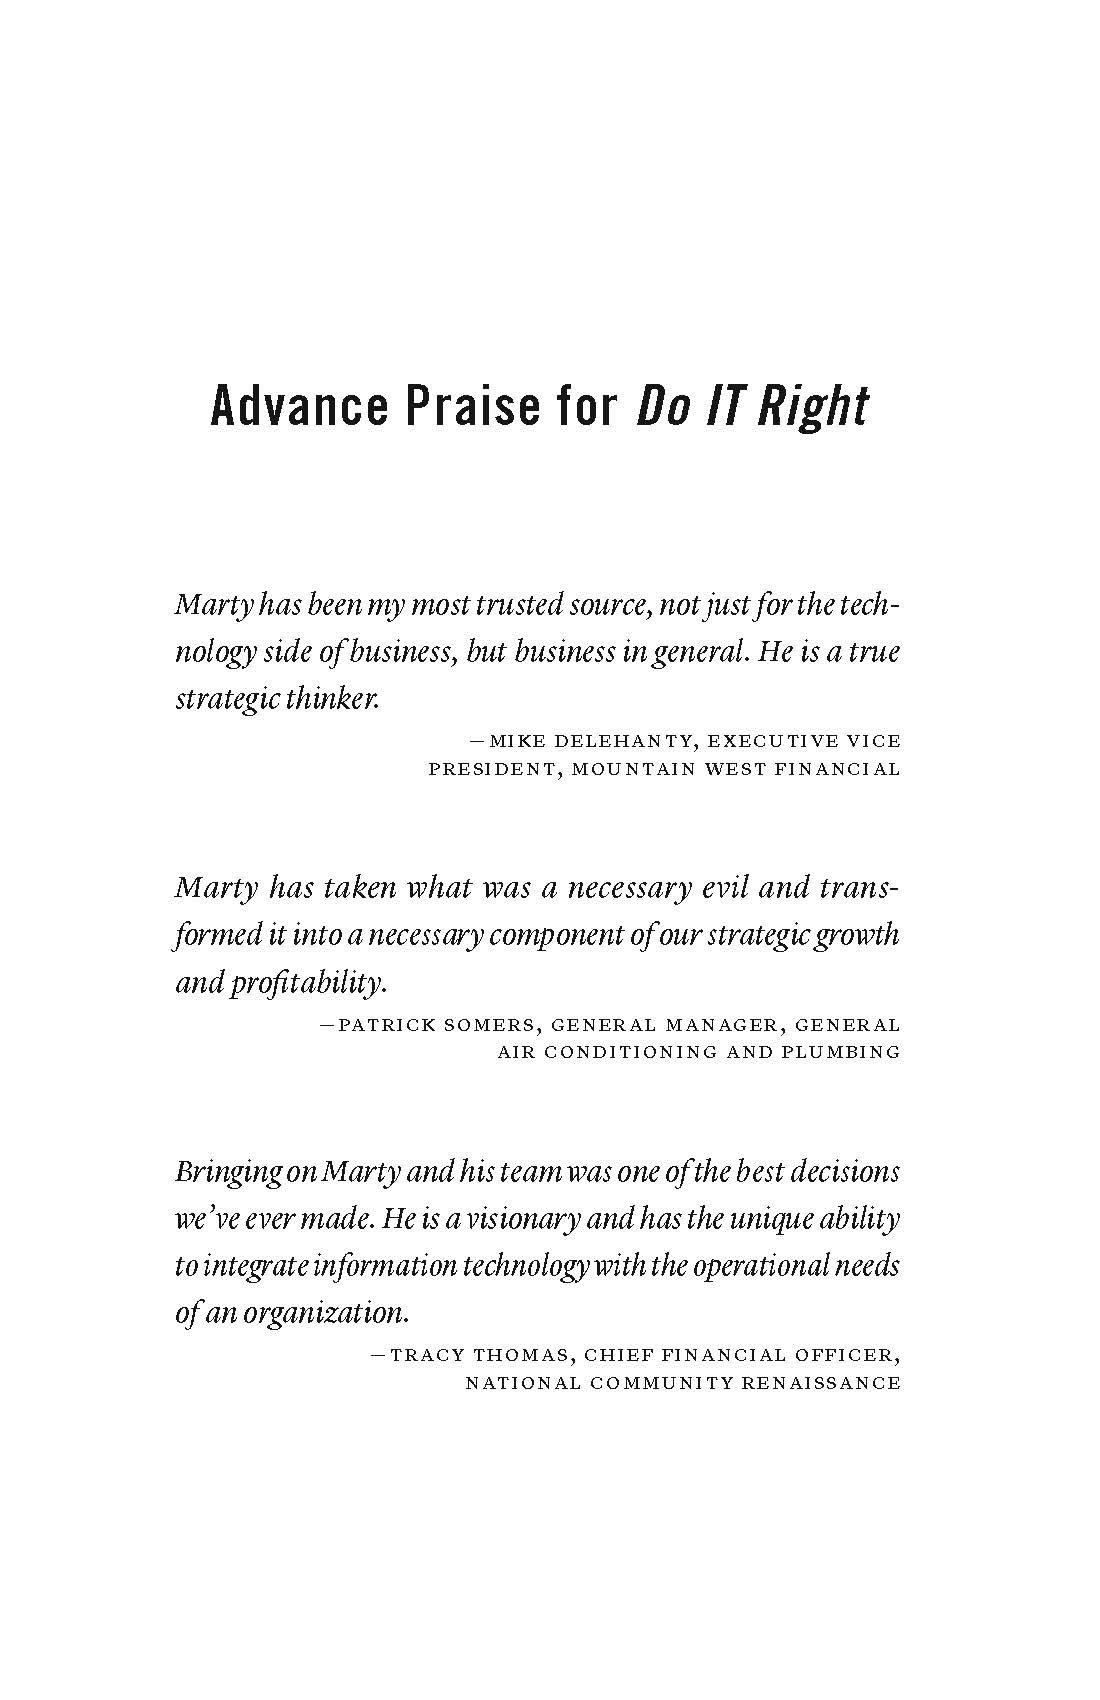 Do IT Right - Advance Praise Page 2.jpg